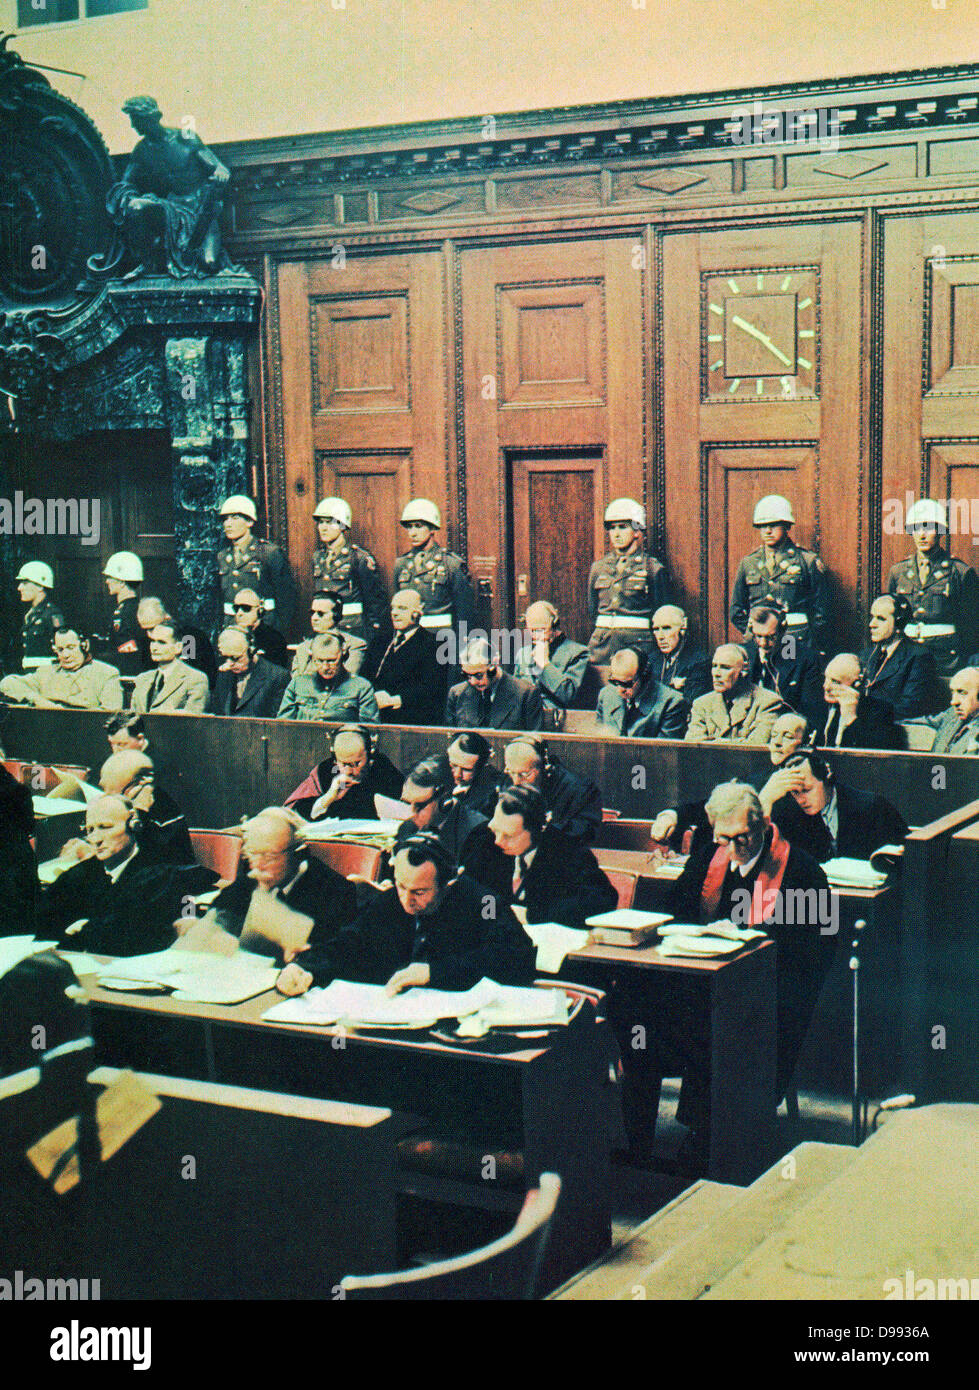 Nuremberg War Crimes trial 1946. defendants including leading Nazi politicians, Herman Goring and Rudolf Hess - Stock Image